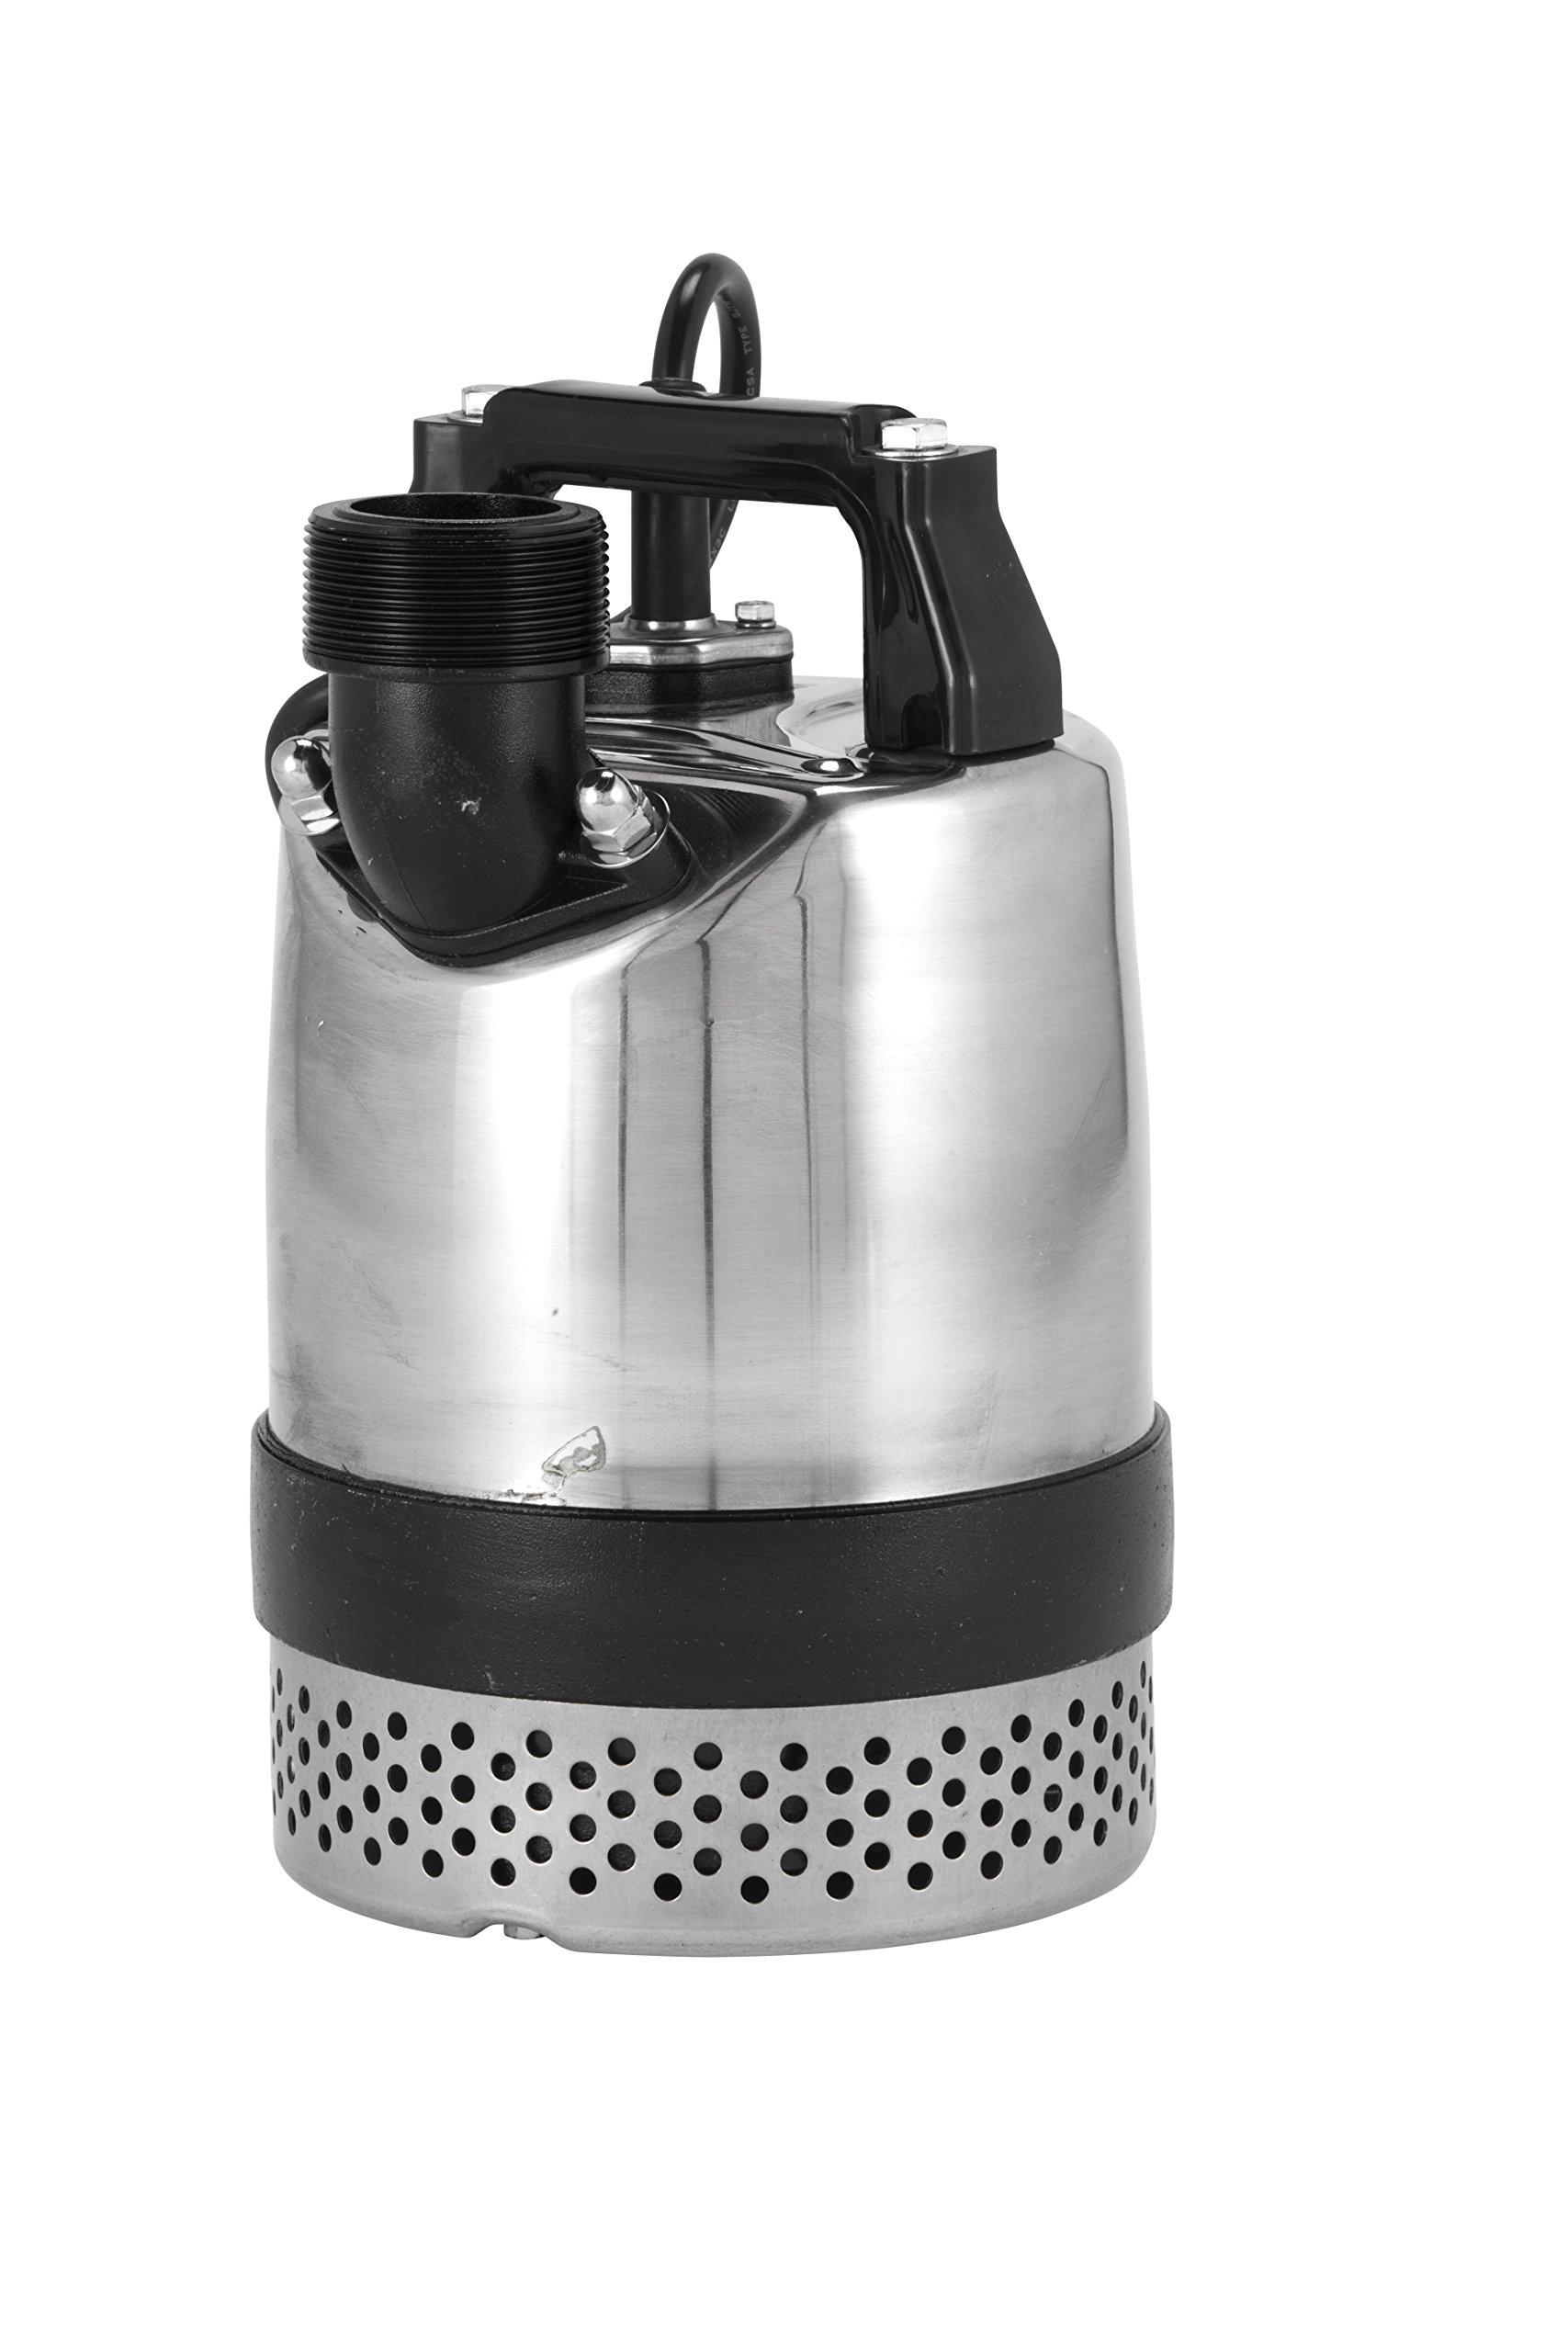 Red Lion RL50CON Heavy-Duty 1/2HP Submersible Utility Pump with 20-Feet Power Cord